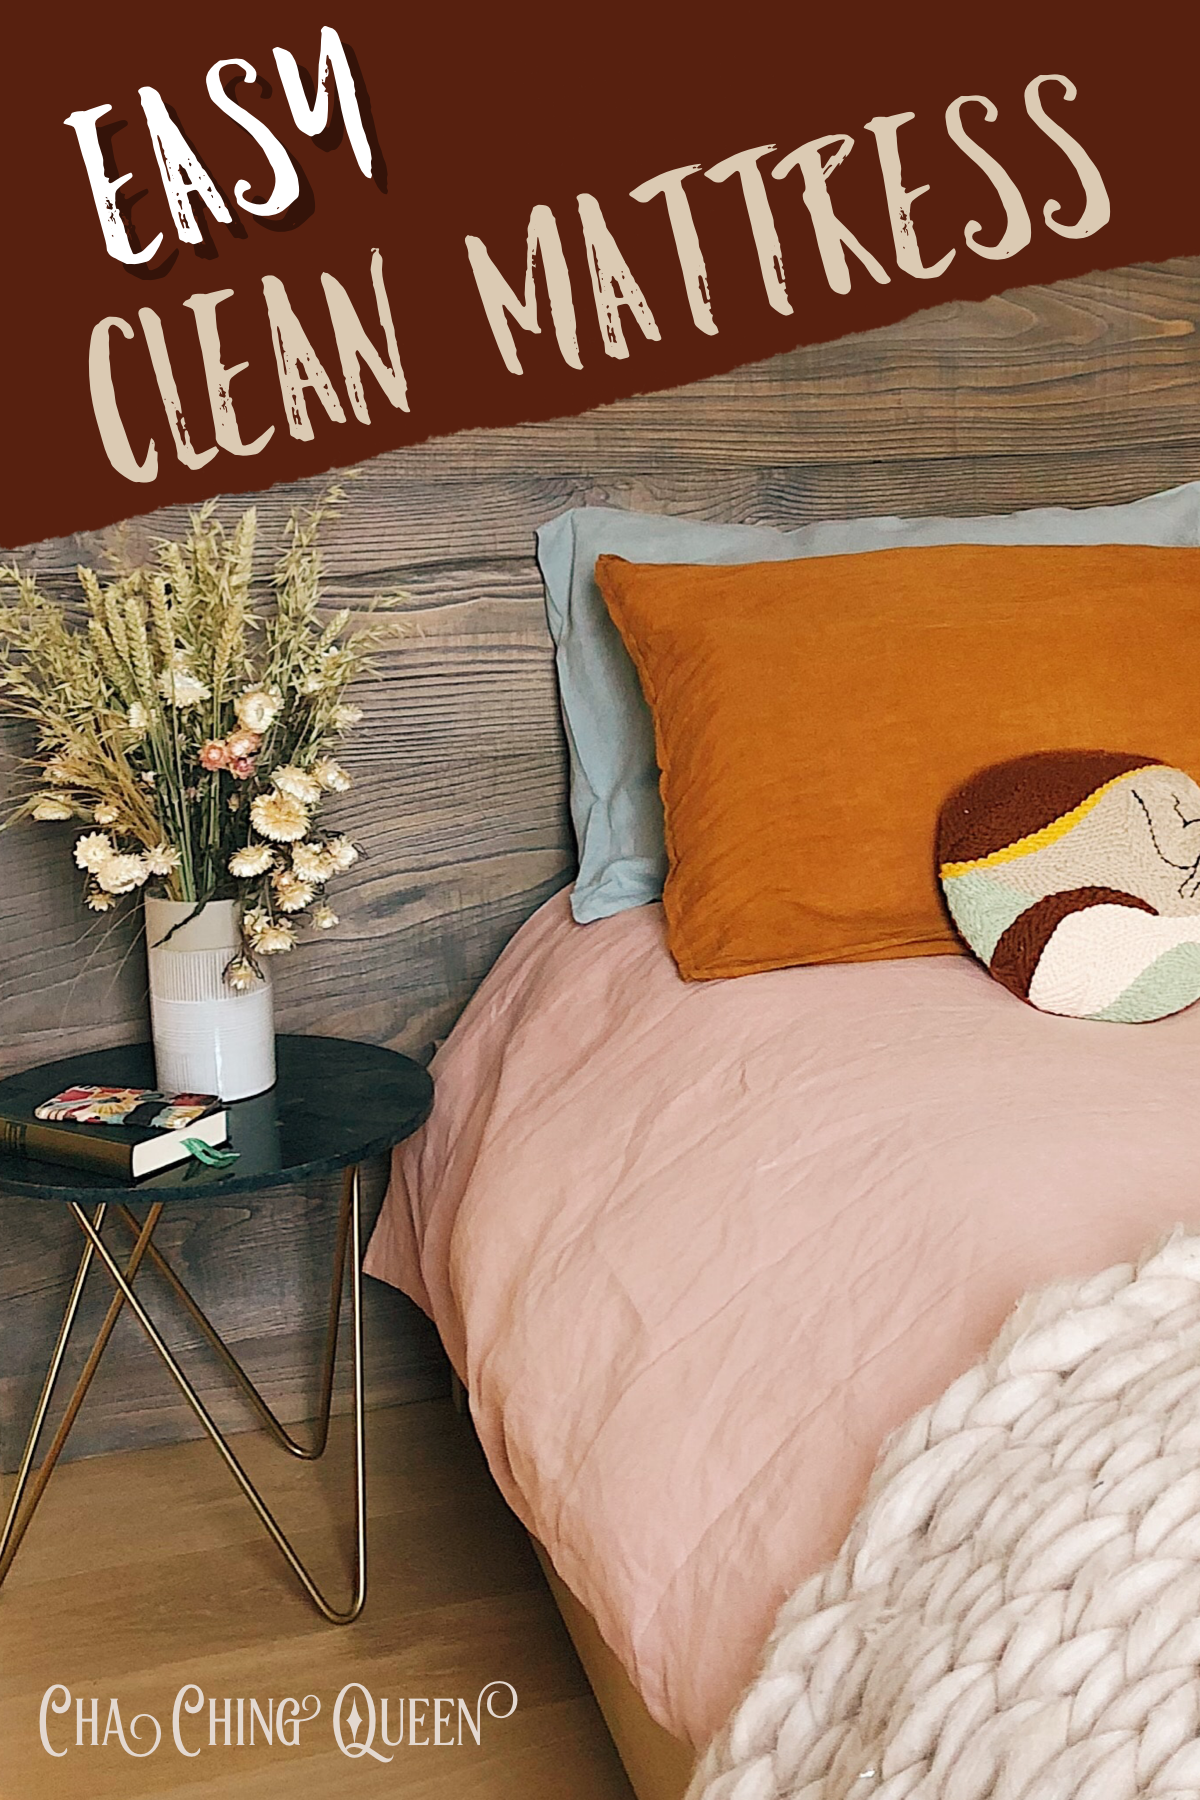 How to Clean a Mattress Guide to Mattress Stain Remover